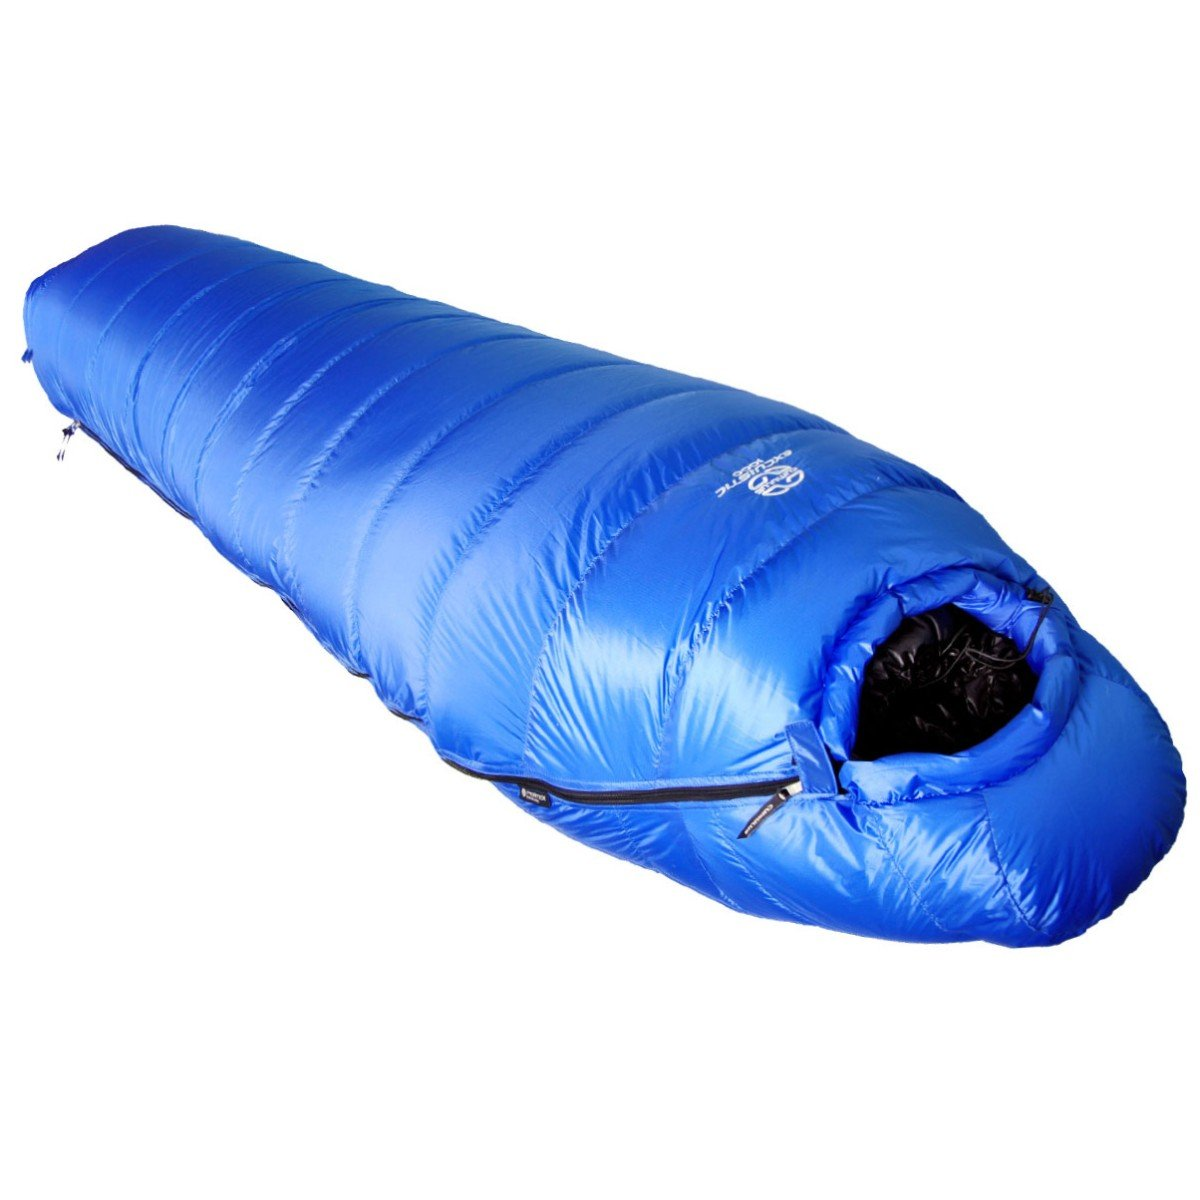 Cumulus Excuistic 1400 sleeping bag, shown fully closed and laid flat, in blue colour